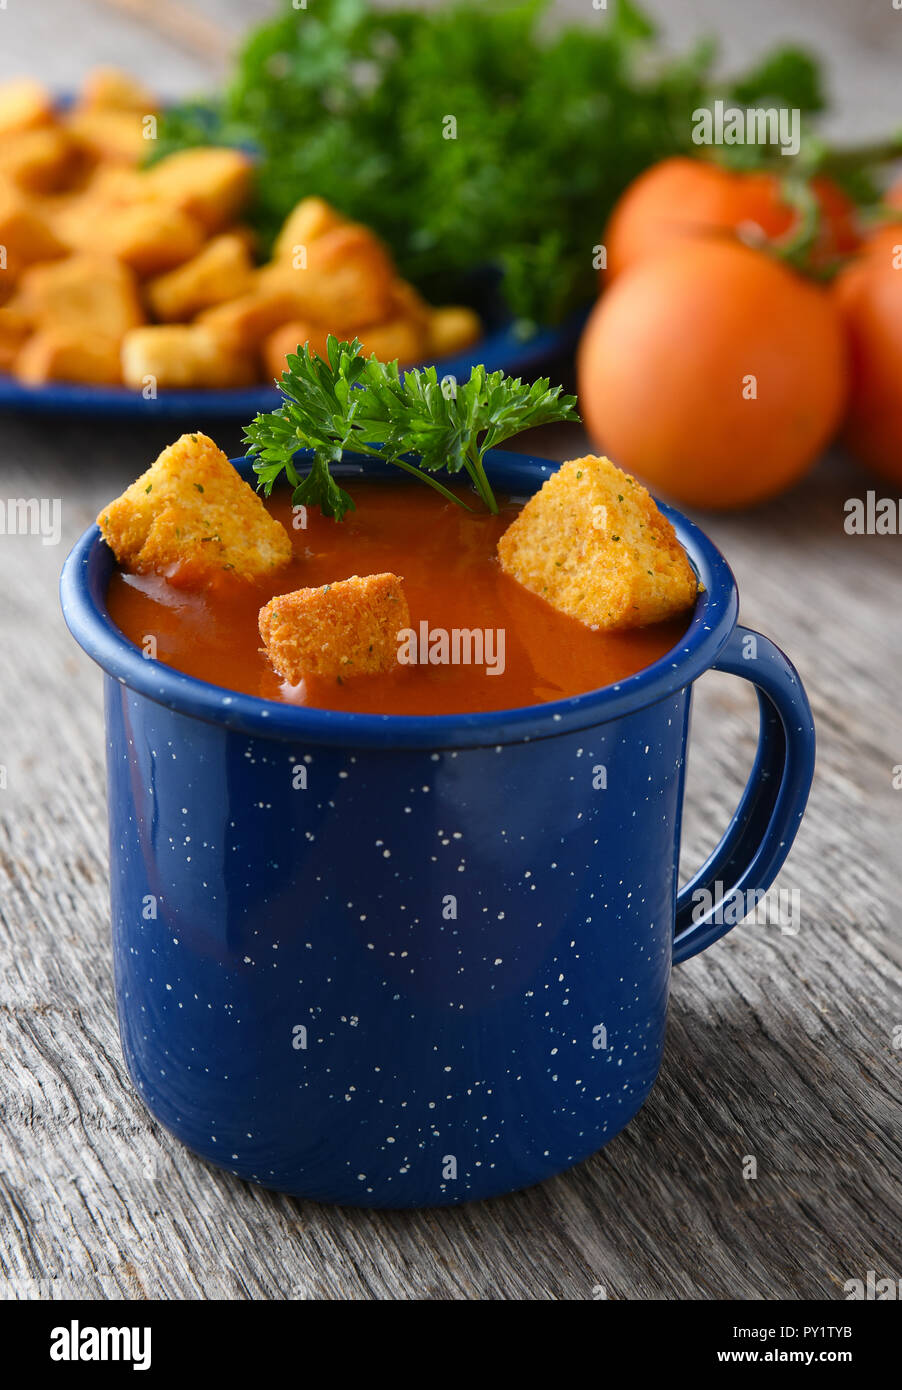 Closeup of a blue mug filled with fresh homemade tomato soup. Tomatoes, parsley and croutons out of focus in the background. - Stock Image